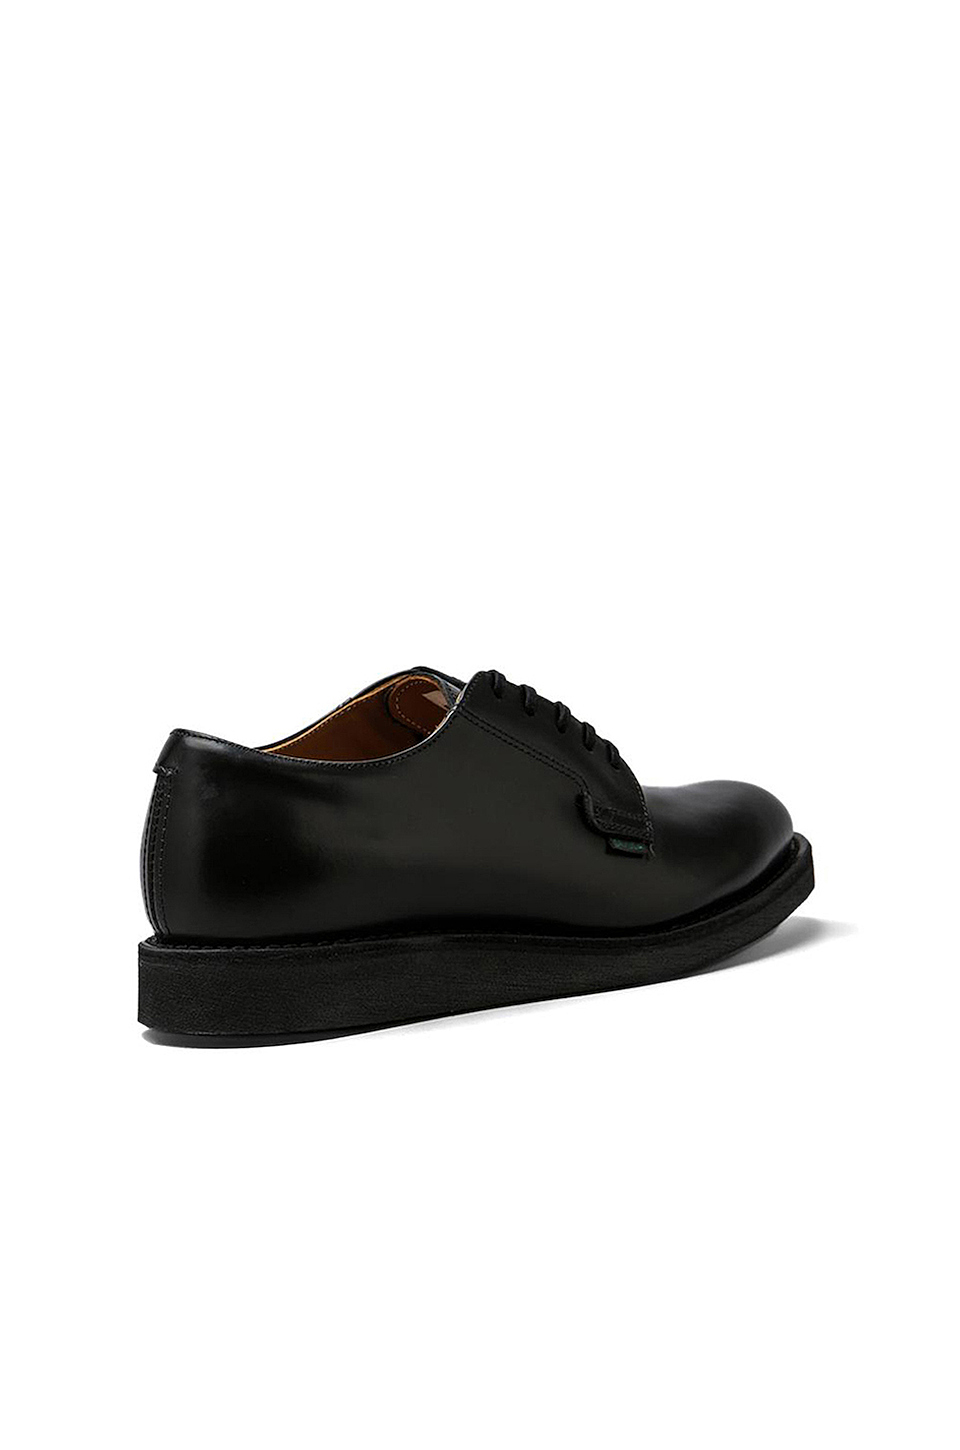 Red Wing Shoes Postman Oxford in Black Chaparral